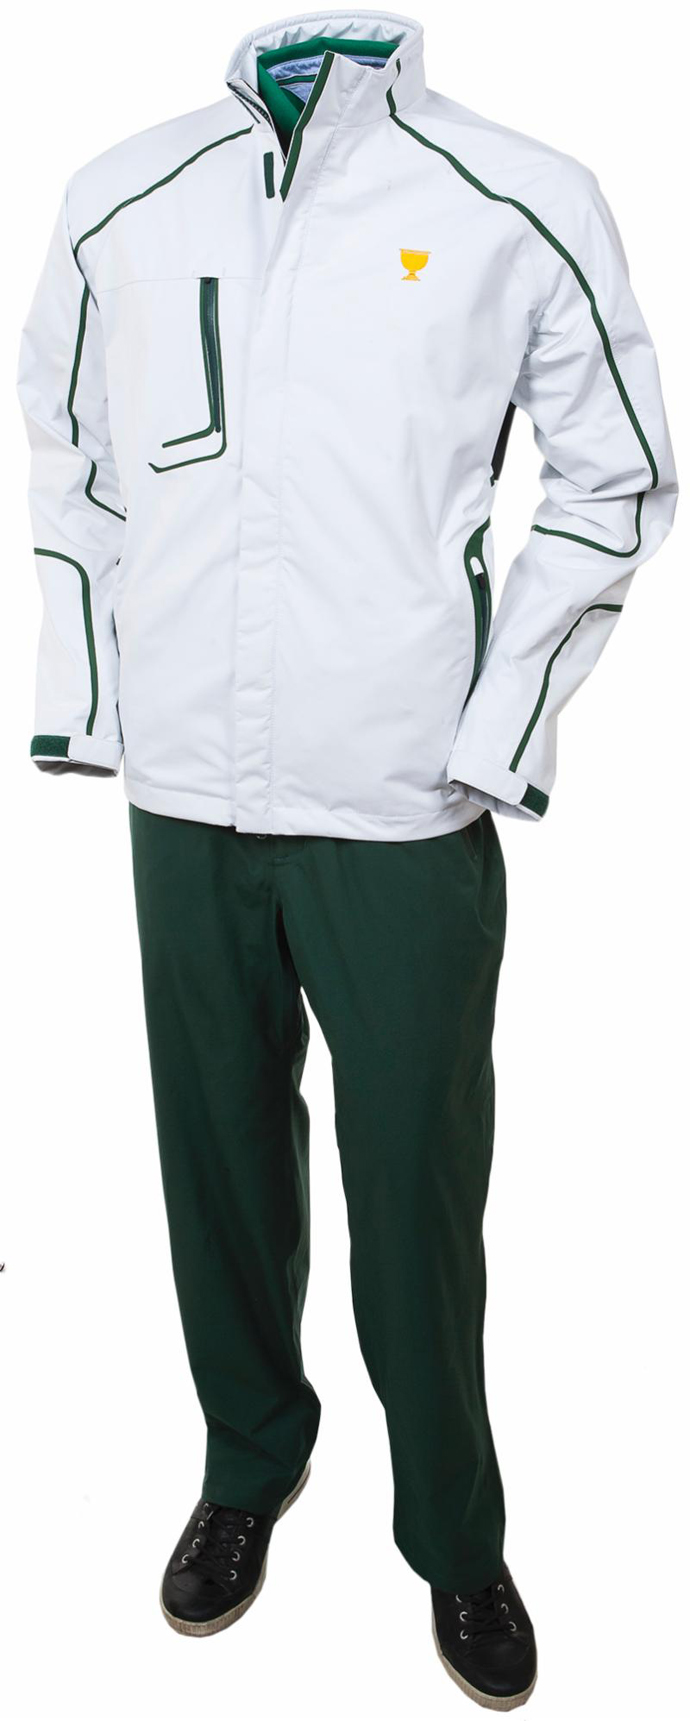 The rain gear (front) for the International Team at the 2013 Presidents Cup.